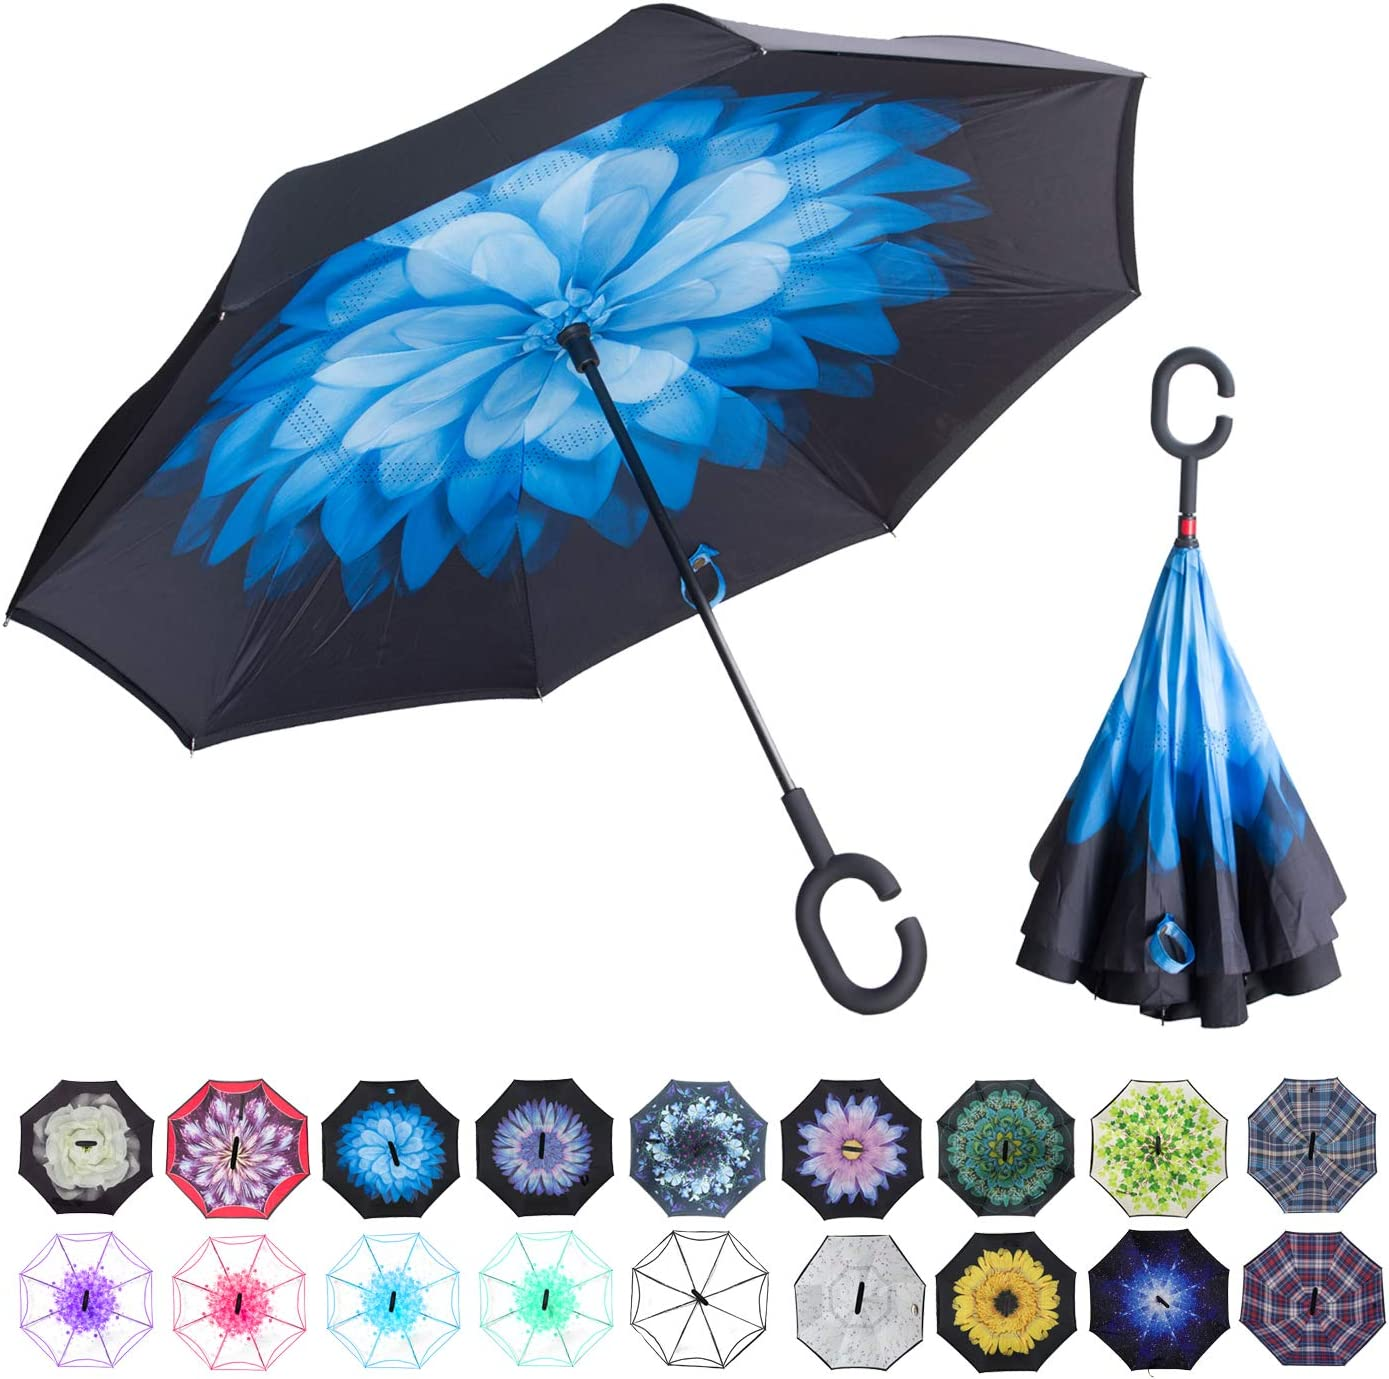 Inverted Umbrella with Funny Honey Badger Inspired Print Car Reverse Folding Umbrella Windproof UV Protection with C-Shaped Handle